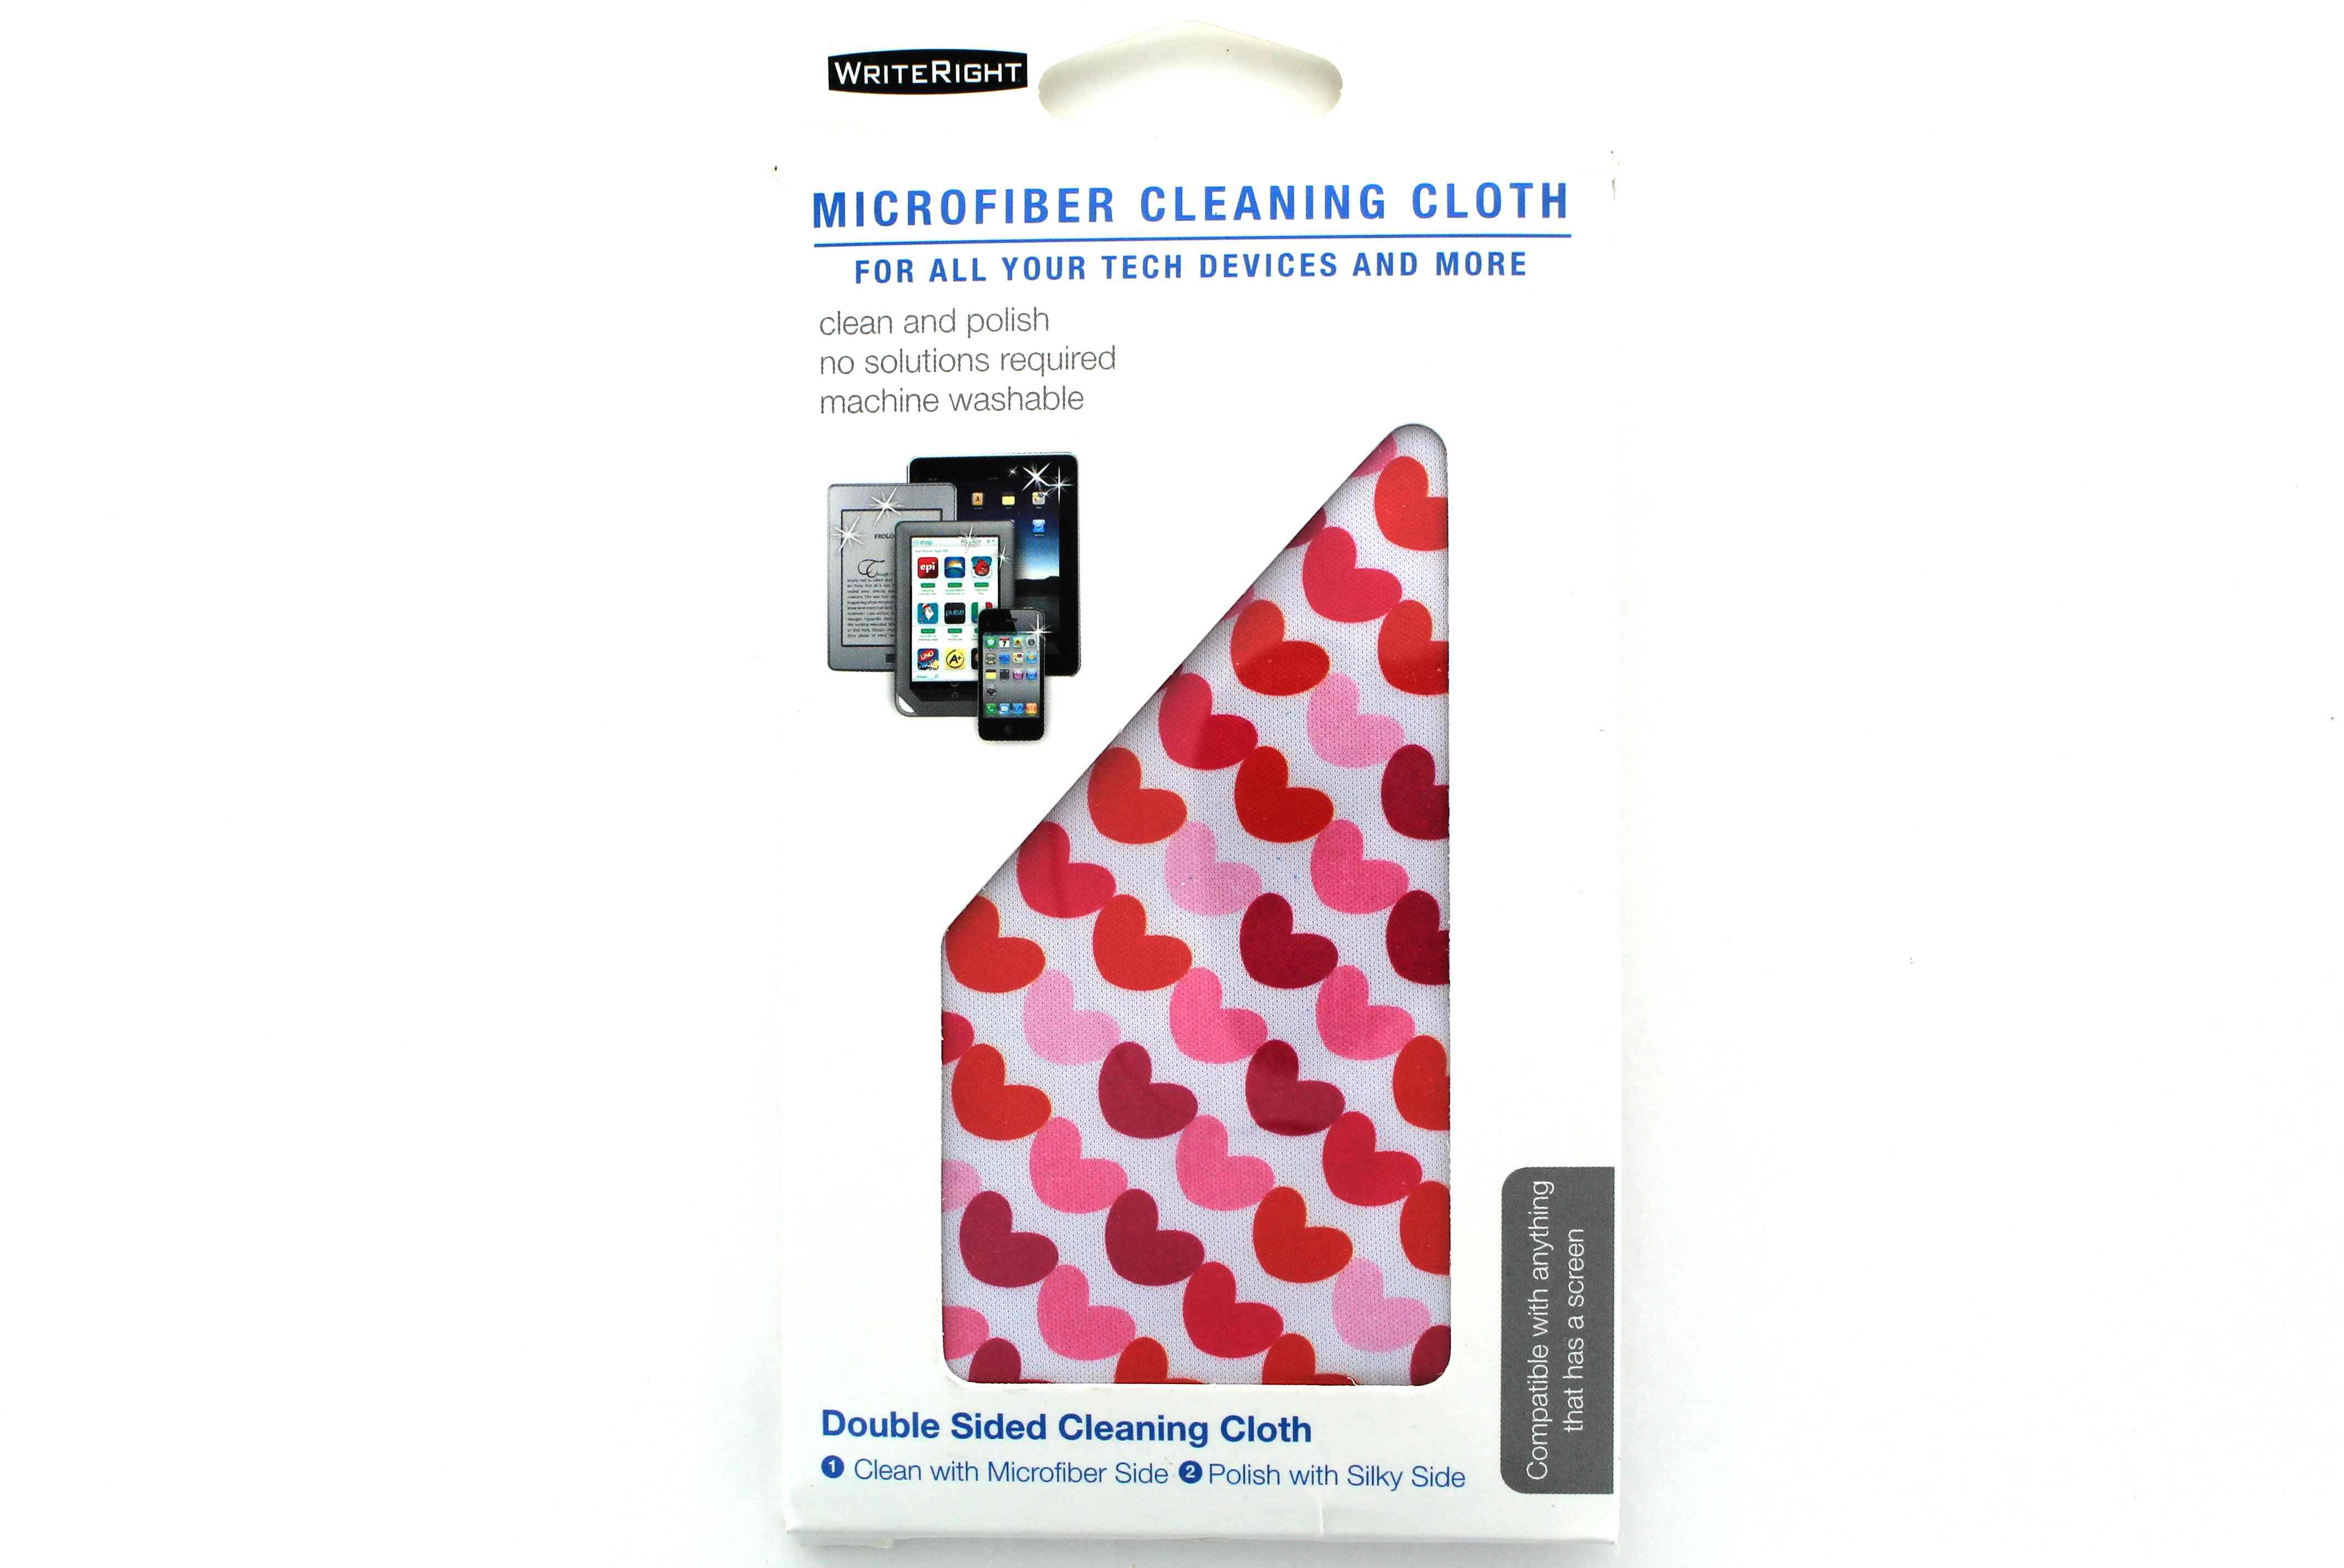 WriteRight Microfiber Double Sided Cleaning Cloth Pink Hearts